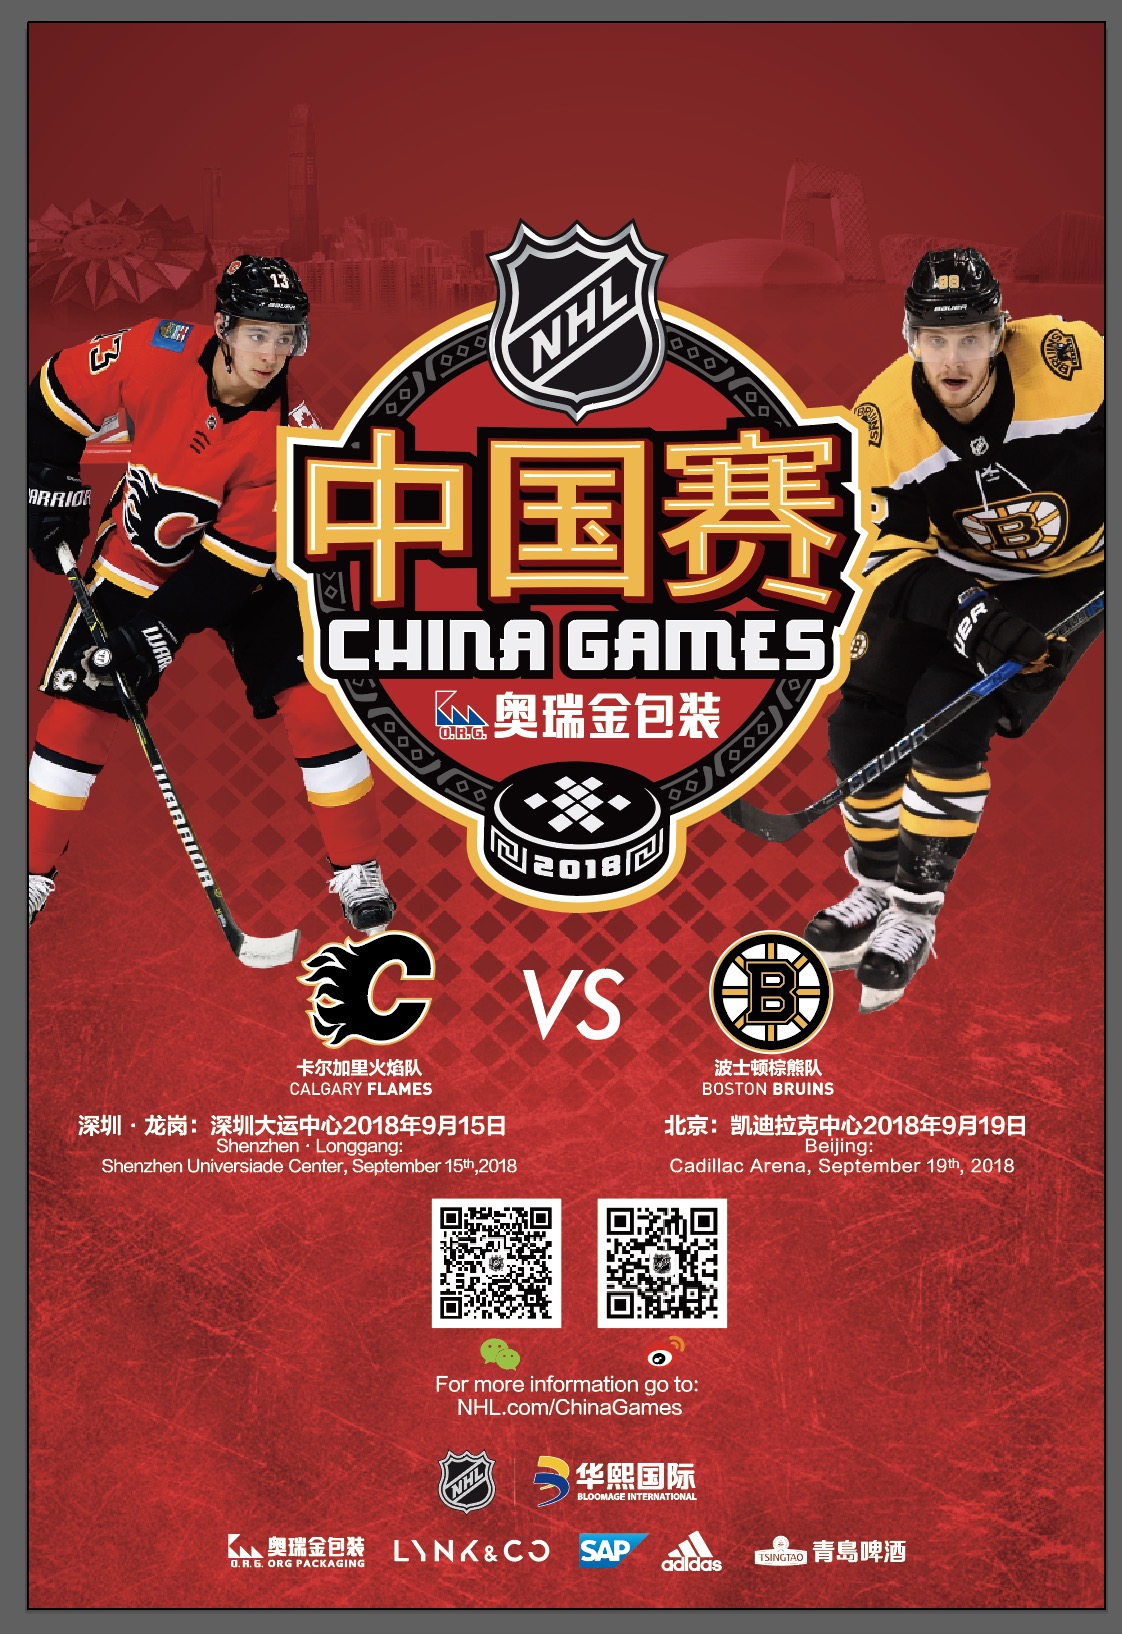 NHL Hockey Reception in Beijing Featuring the Stanley Cup @ Beijing, China